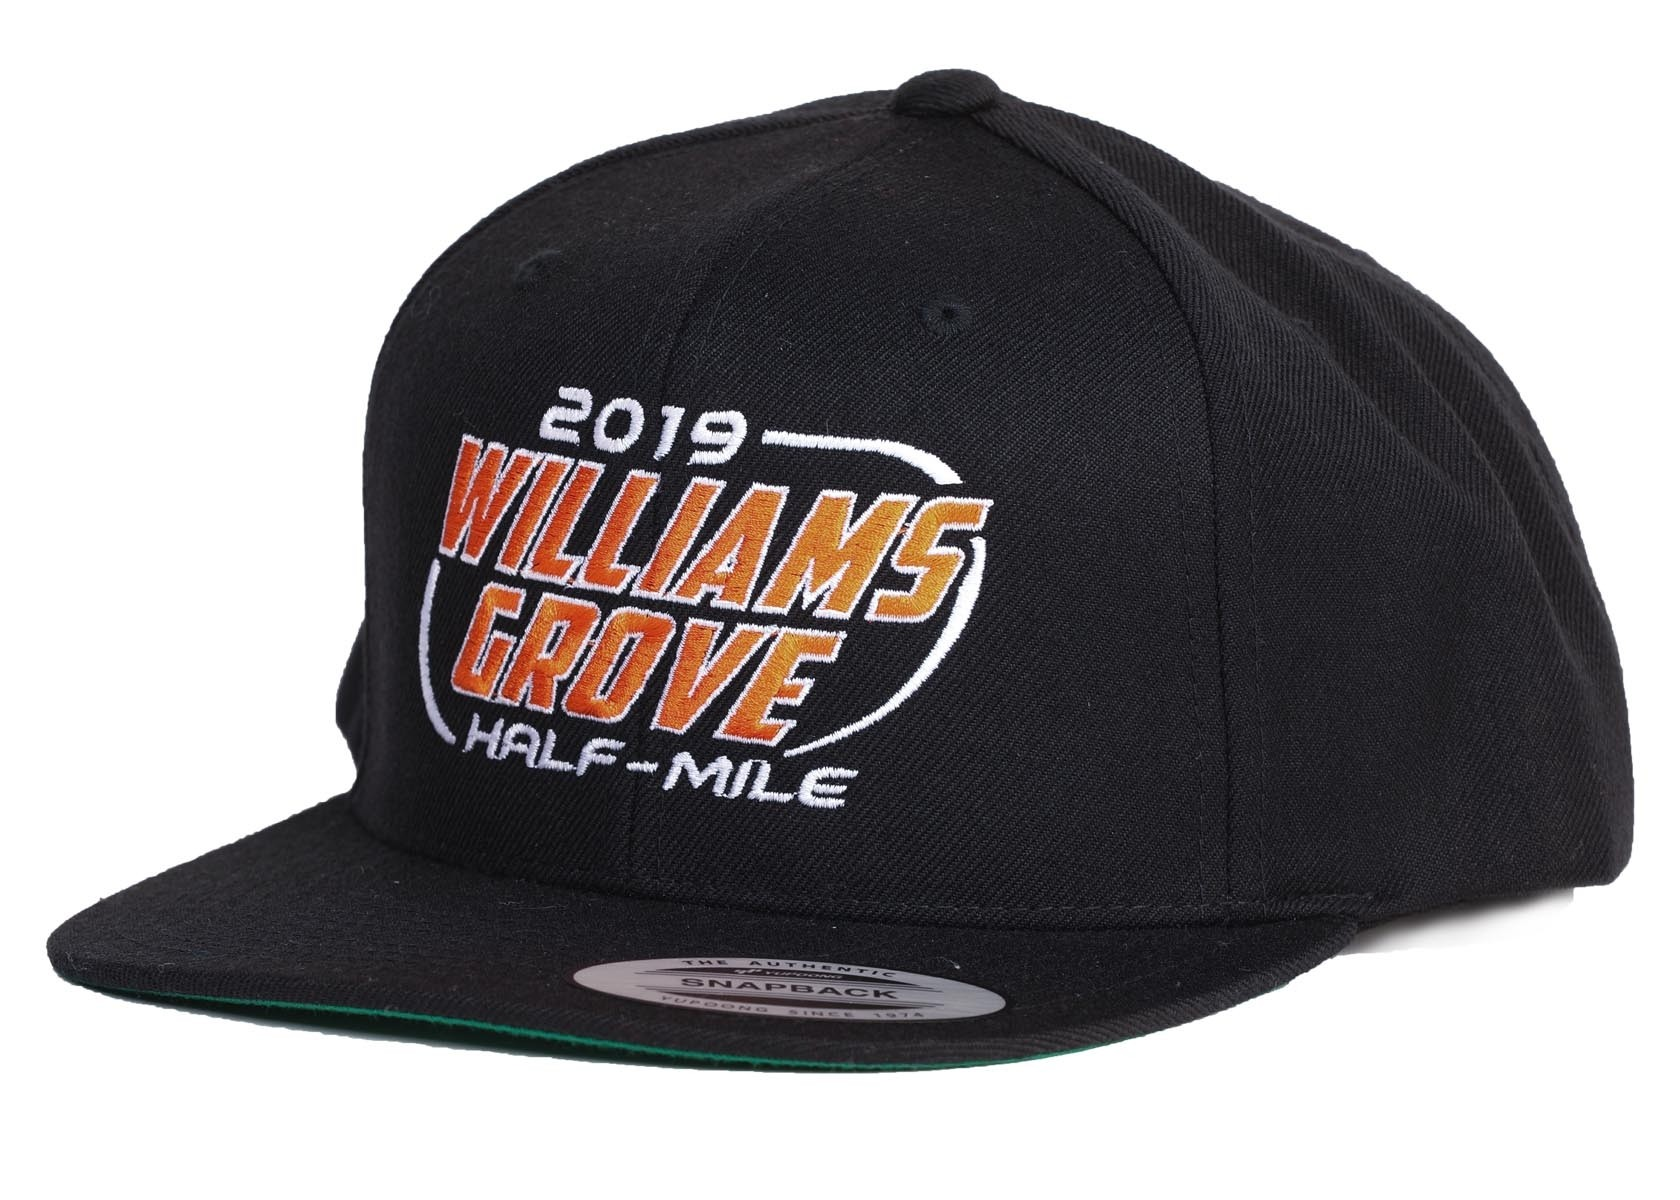 2019 Williams Grove Half-Mile Event Hat